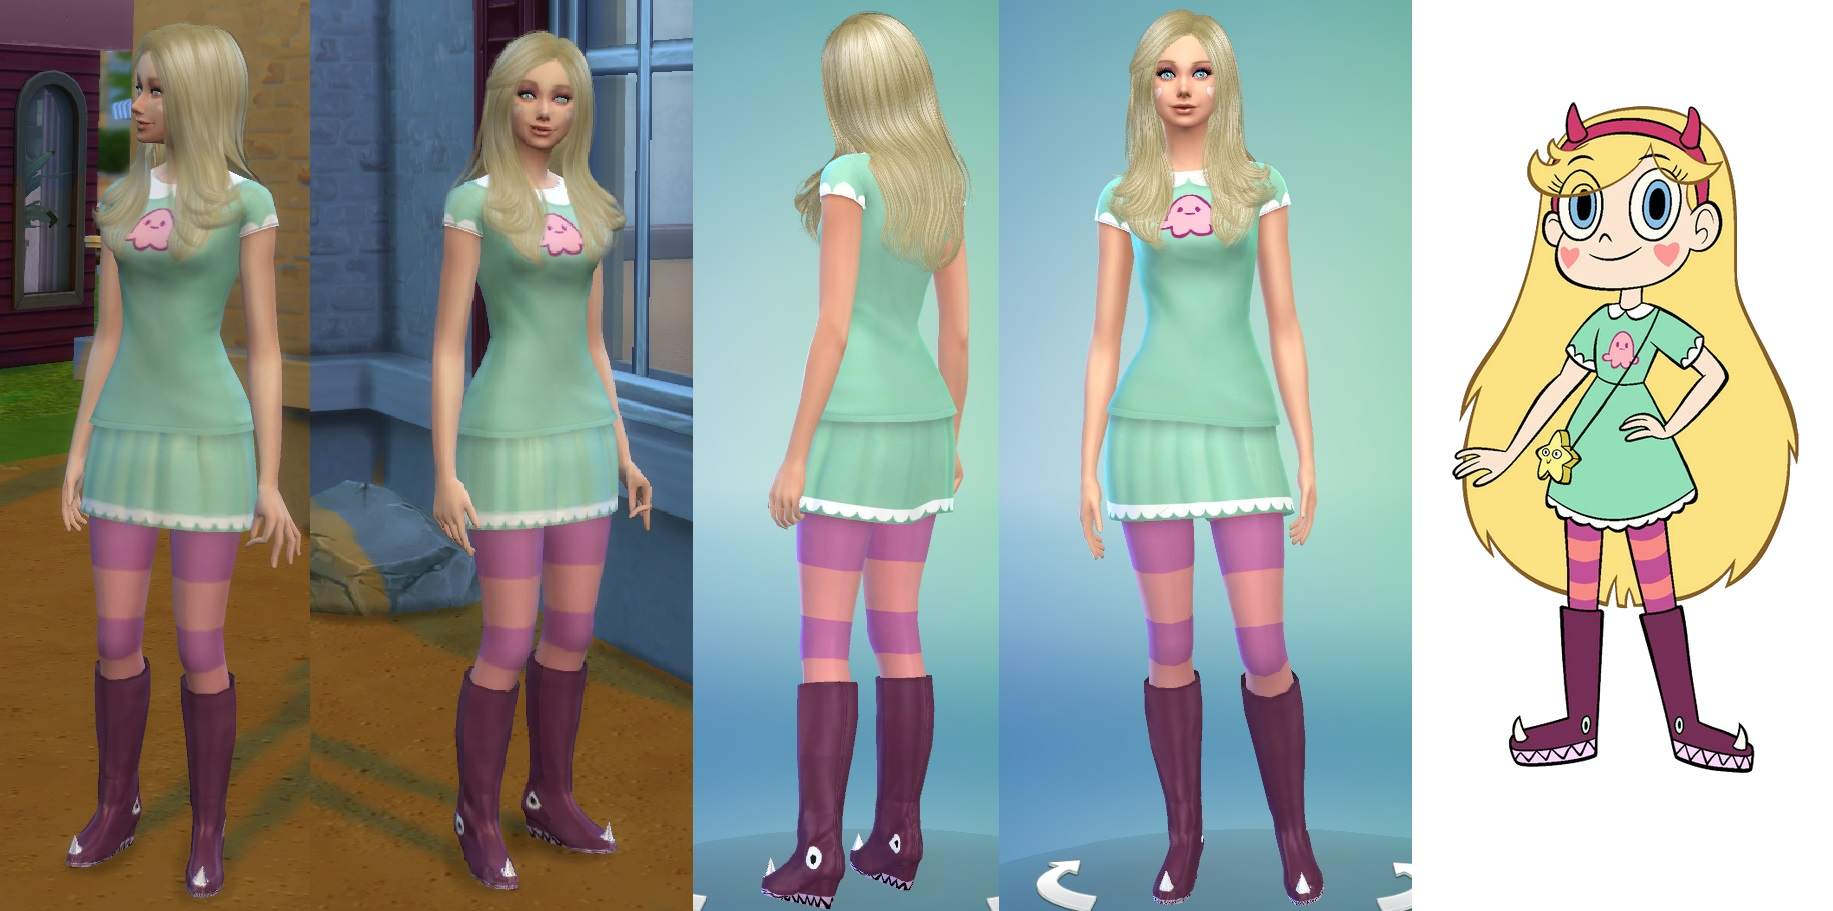 Sims 4 online dating mod download in Melbourne